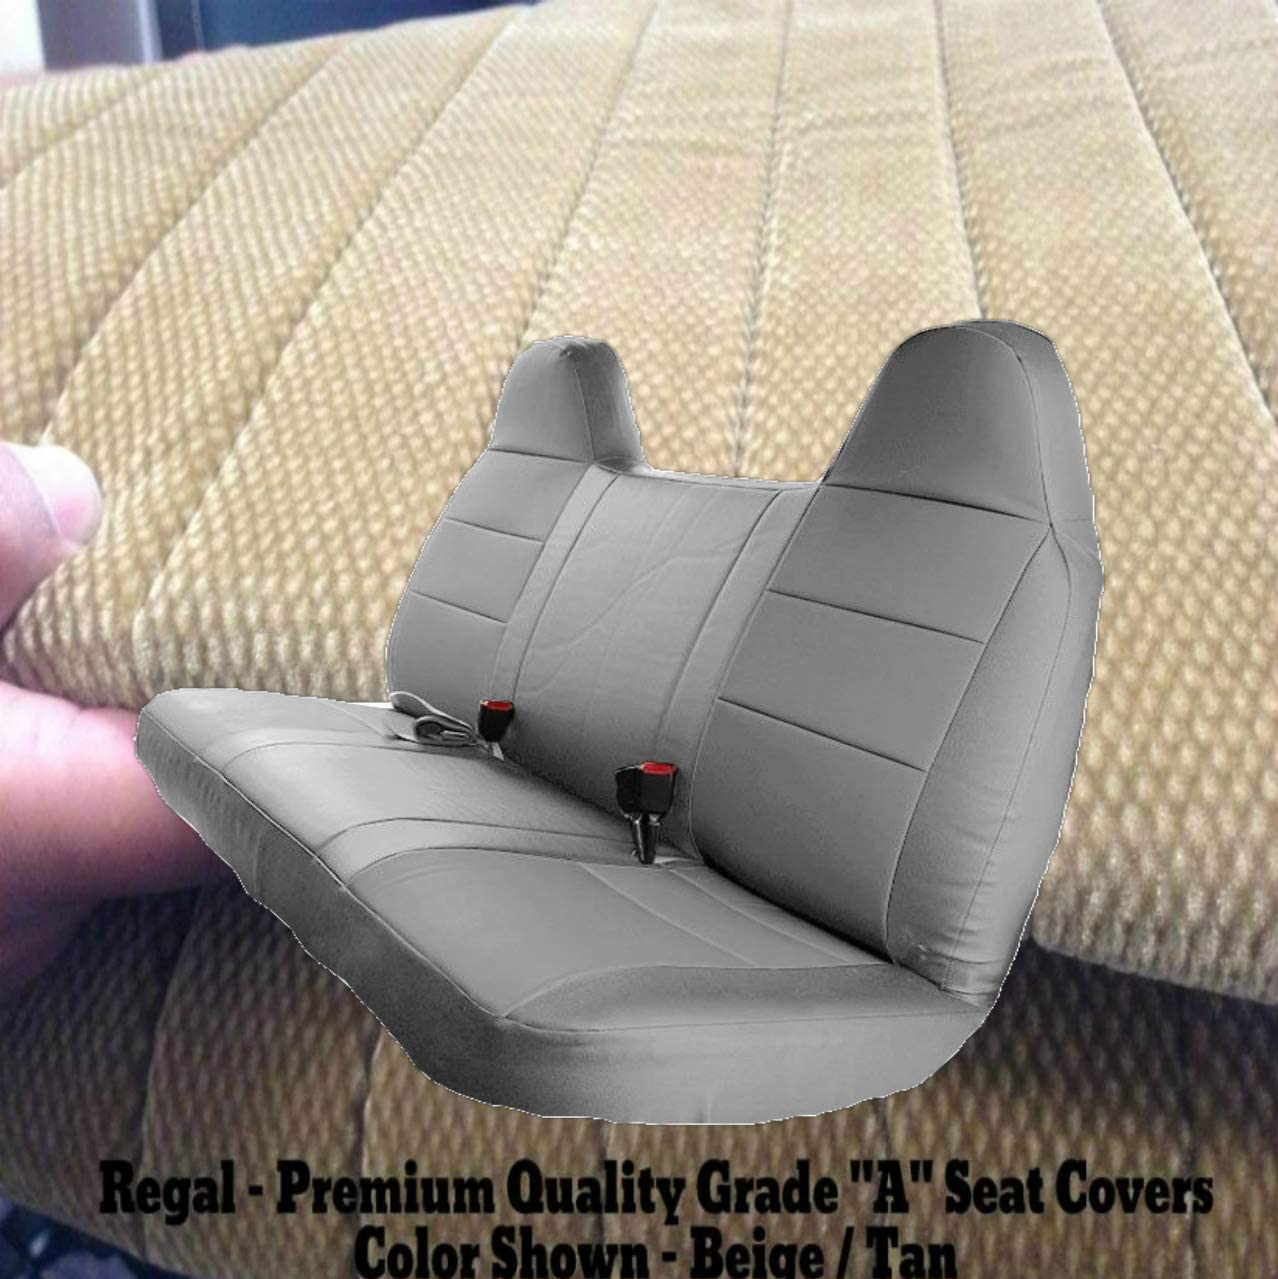 RealSeatCovers 3 Layer for 1992-2010 Ford F-Series F150 - F550 Pickup Truck Front Solid Bench 10mm Thick F23 High Back Belt Cut Out Custom Made Fit (Beige)